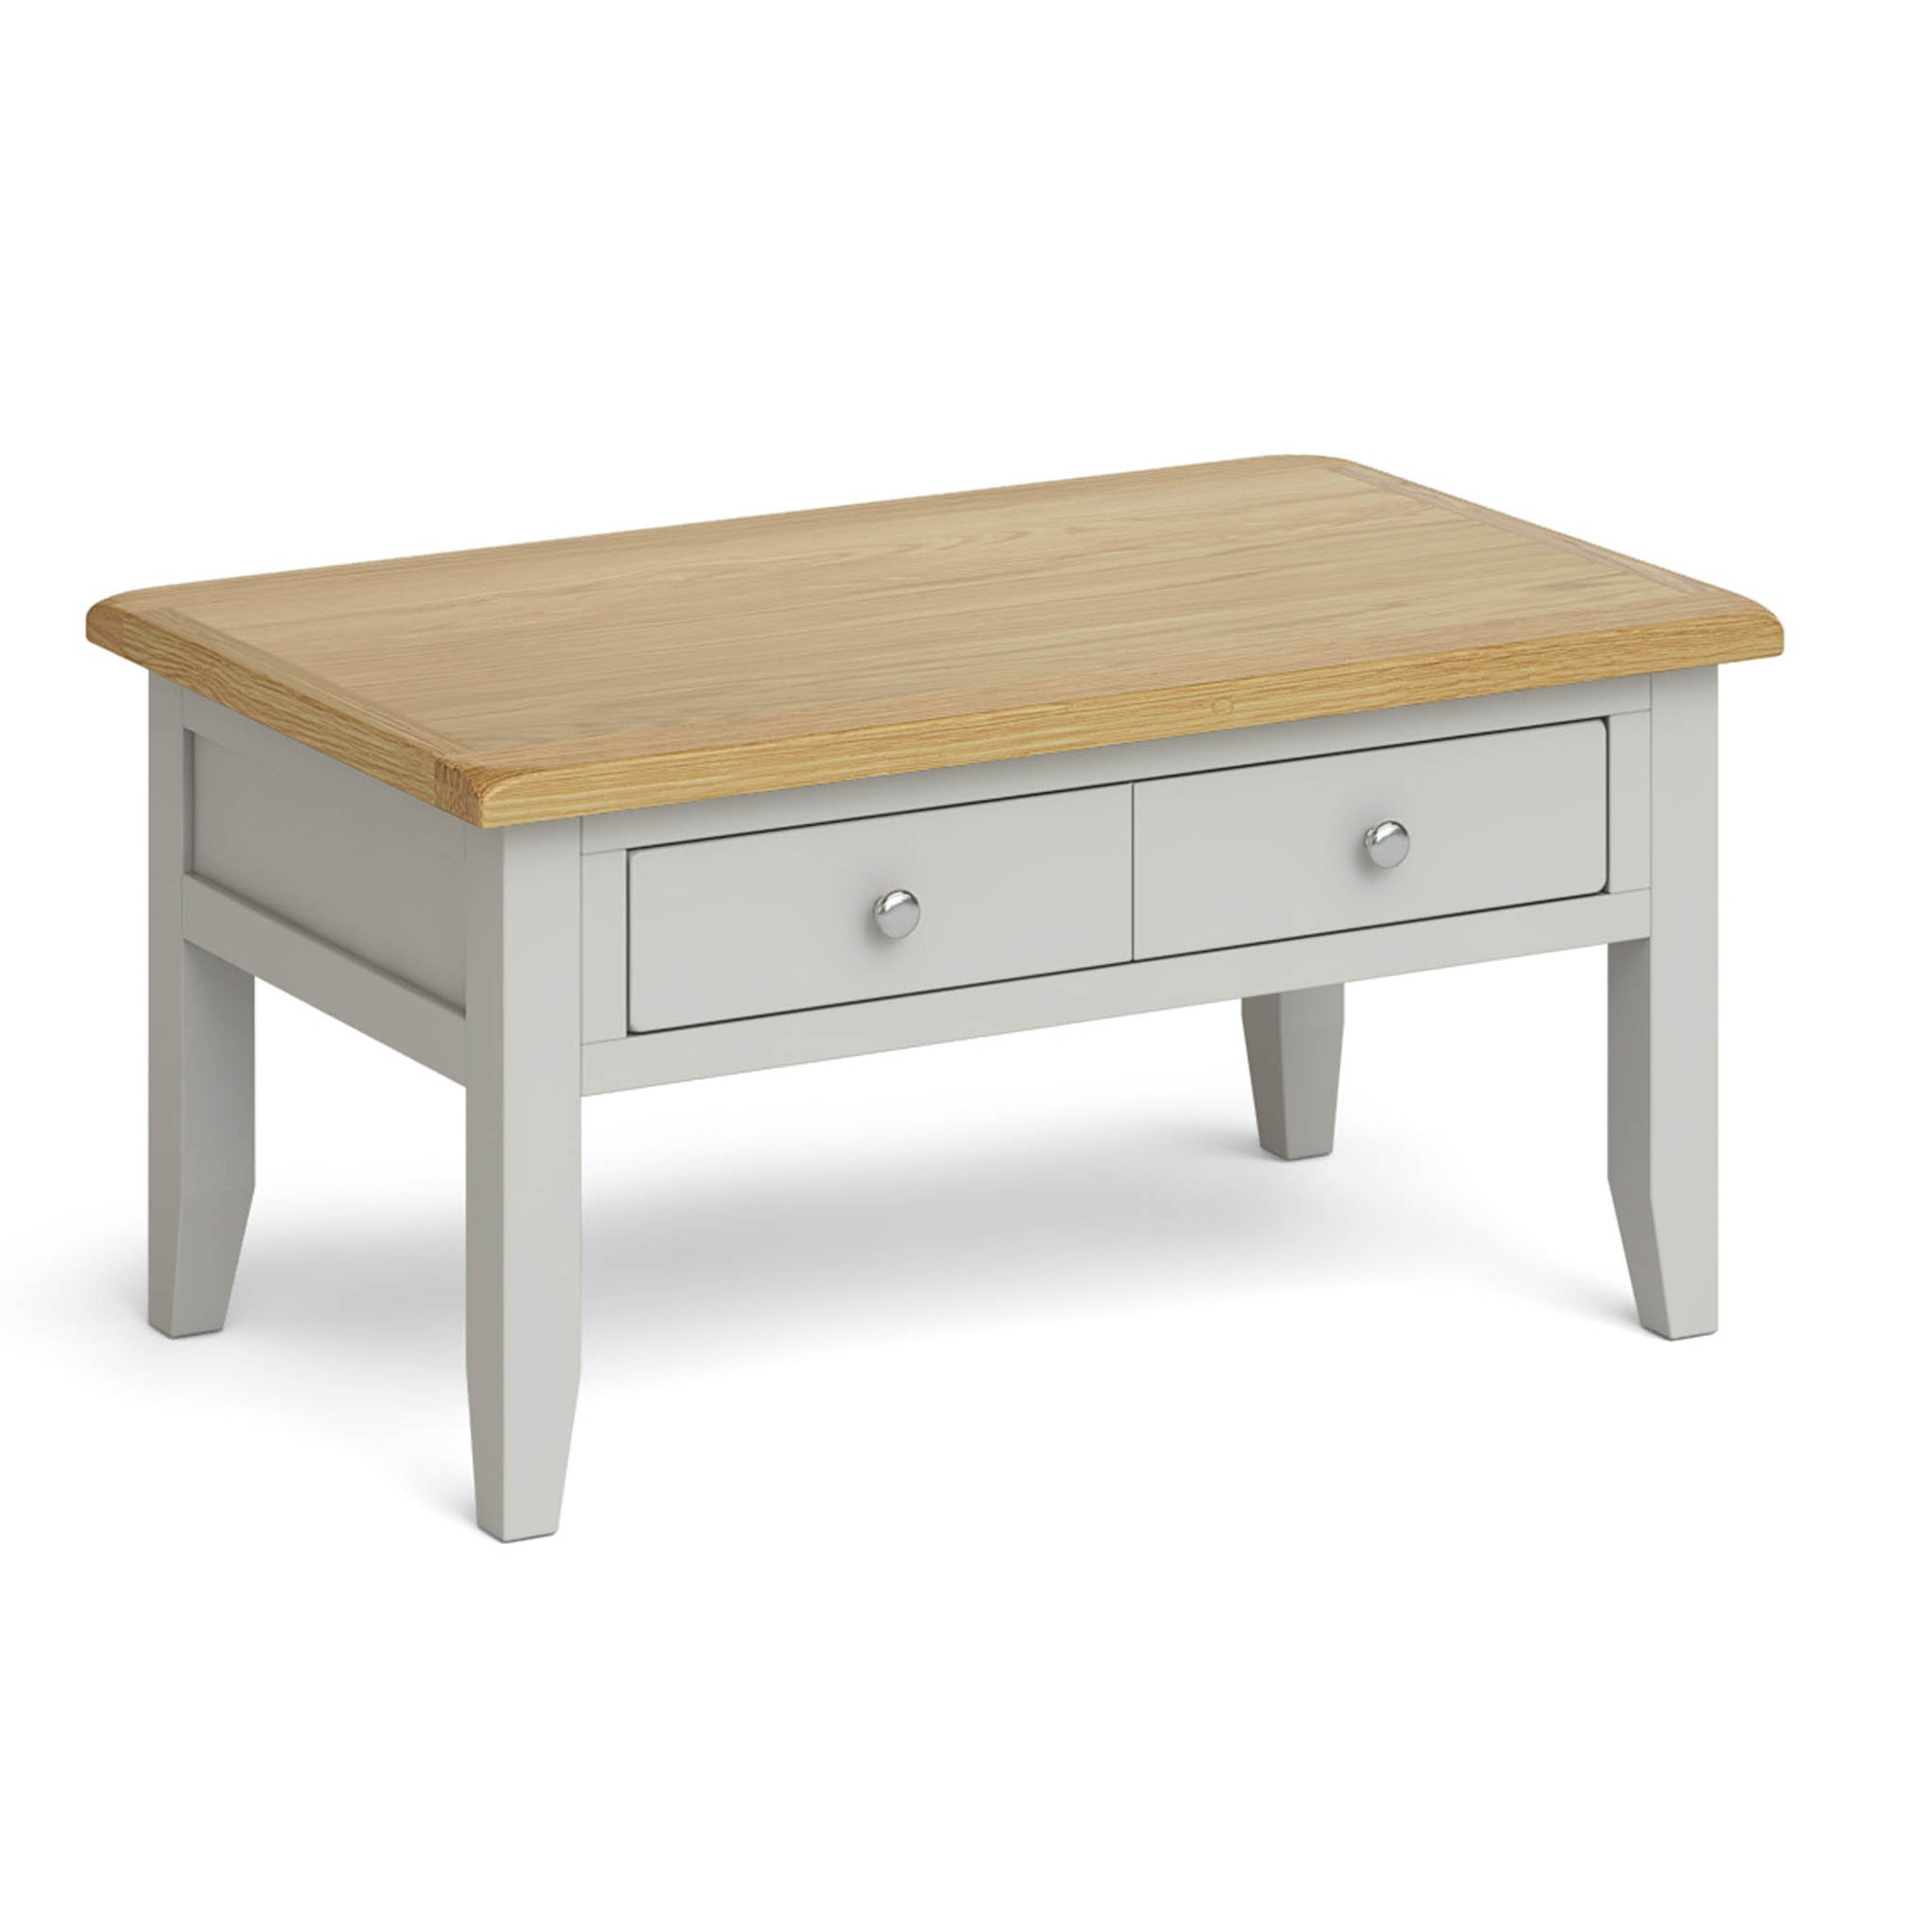 Lundy Grey Coffee Table by Roseland Furniture